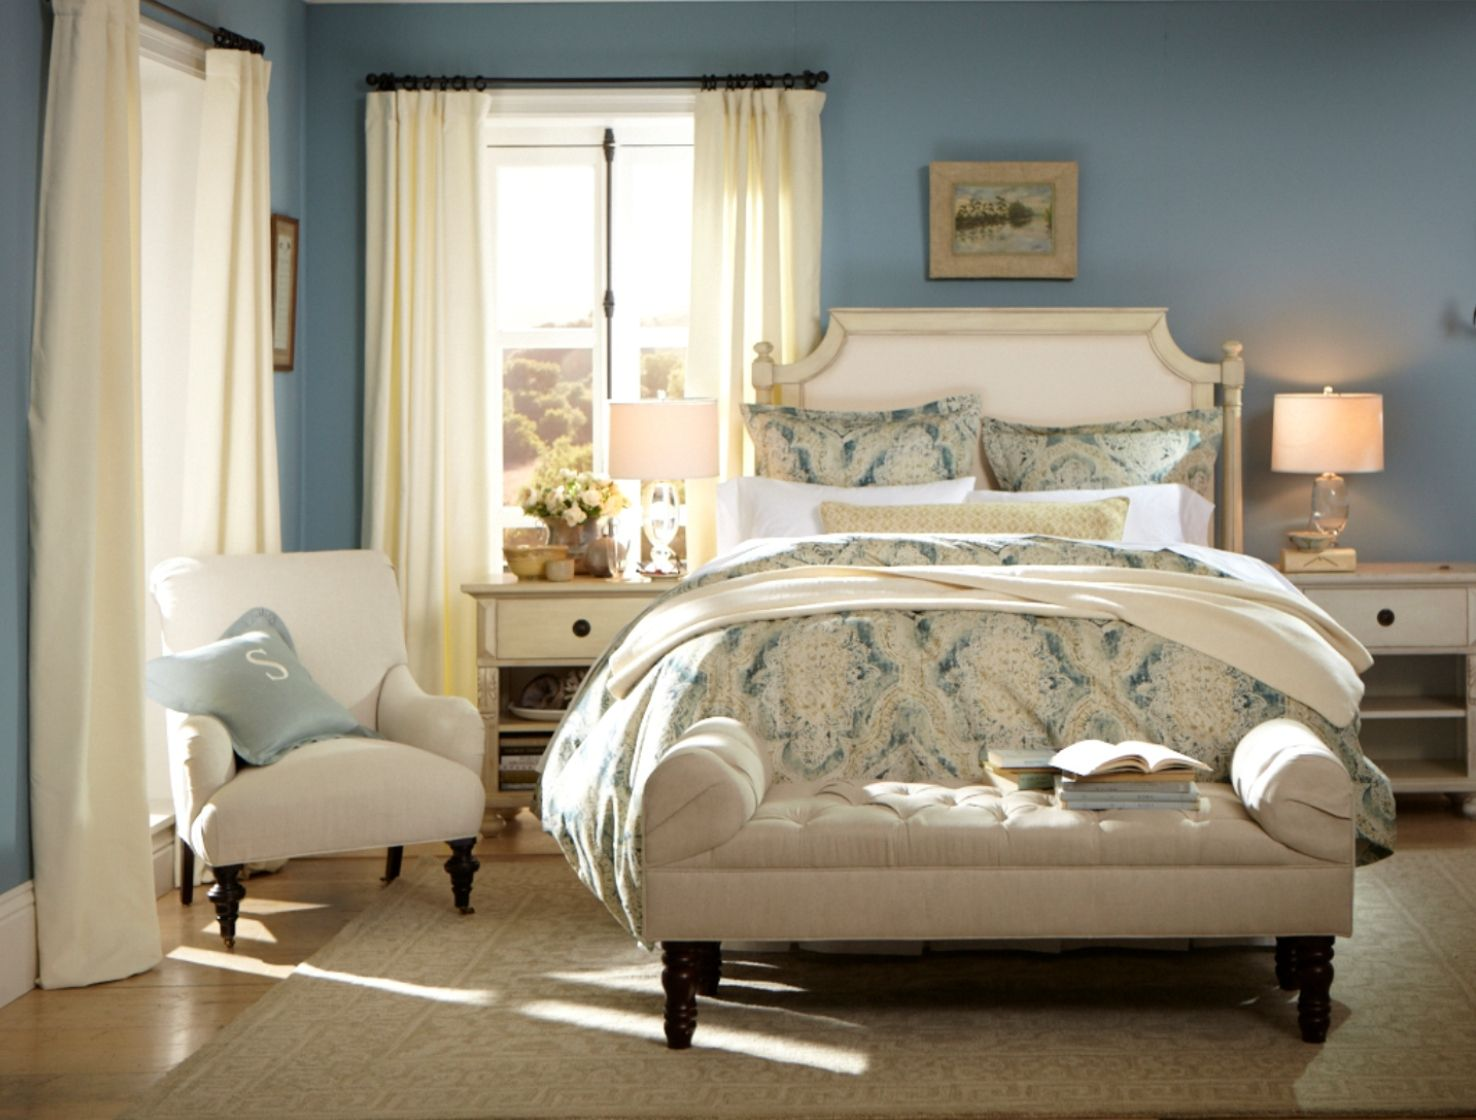 bedroom featuring paint color smokey blue sw 7604 from 16790 | 280a20025cbb1387f1cad2d837a1213e